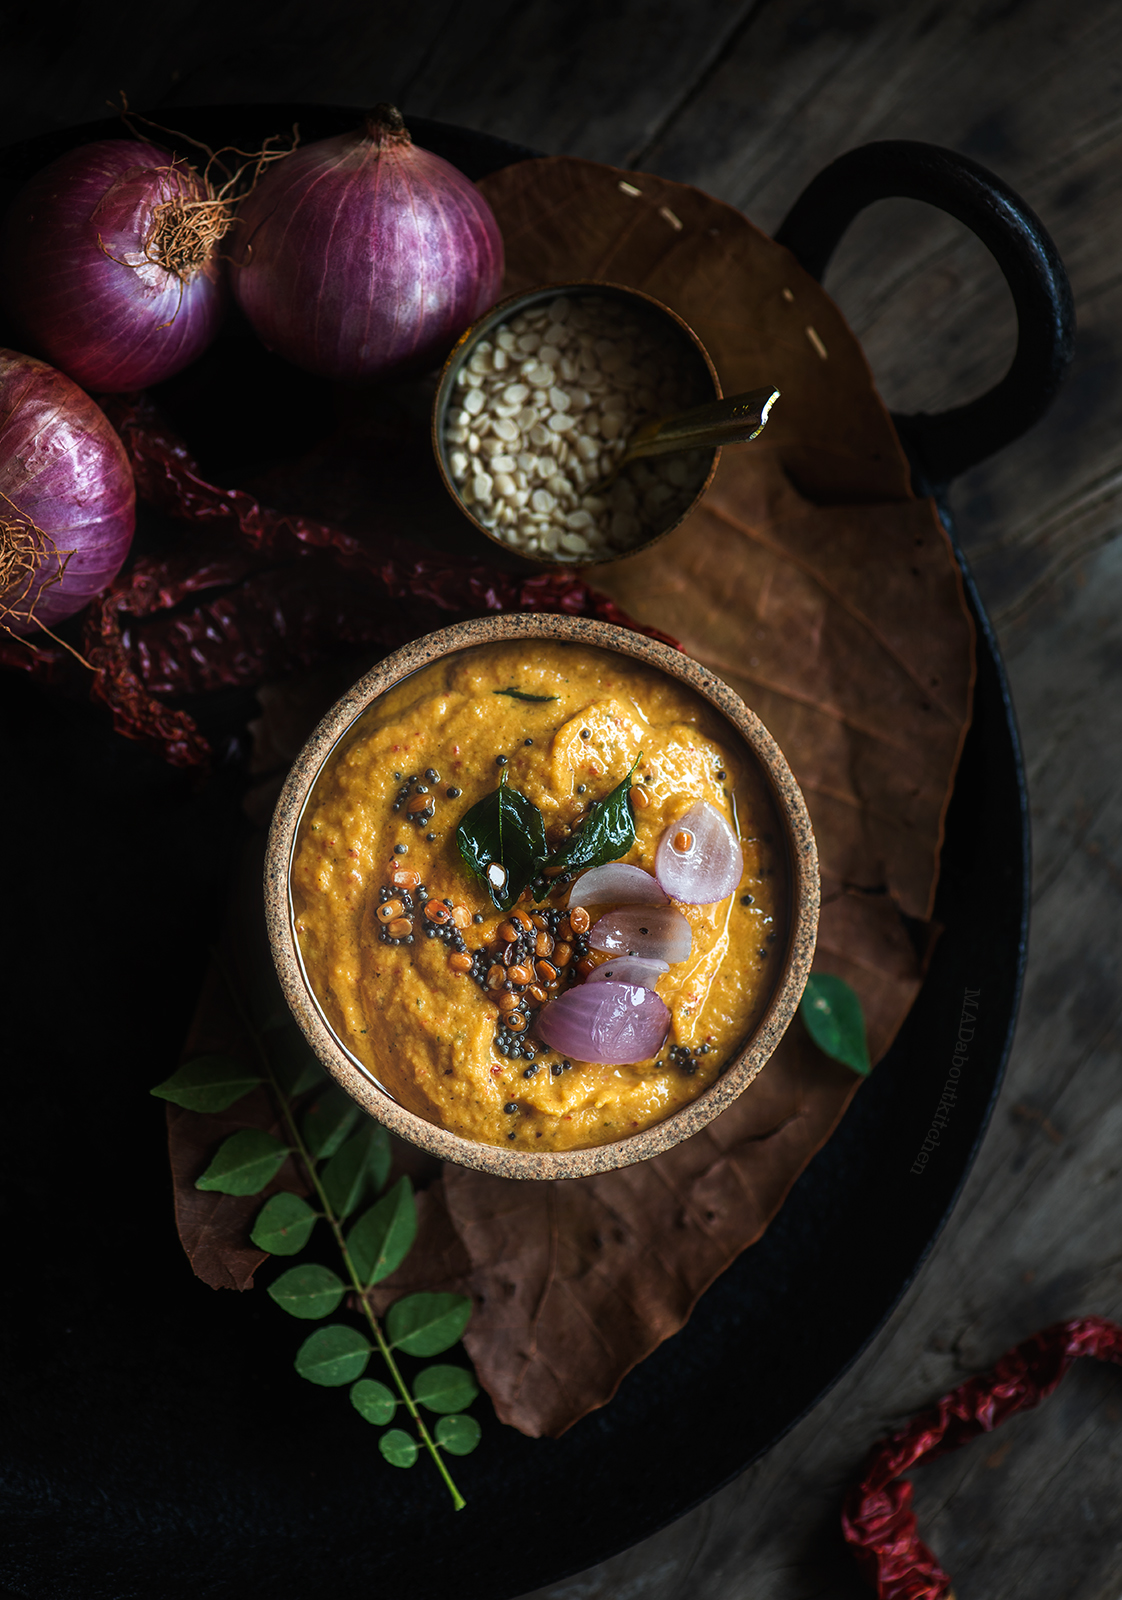 Eerulli chutney, Onion Chutney is made using onion as the main ingredient. The browned onions gives the chutney a very distinct smell and flavour.